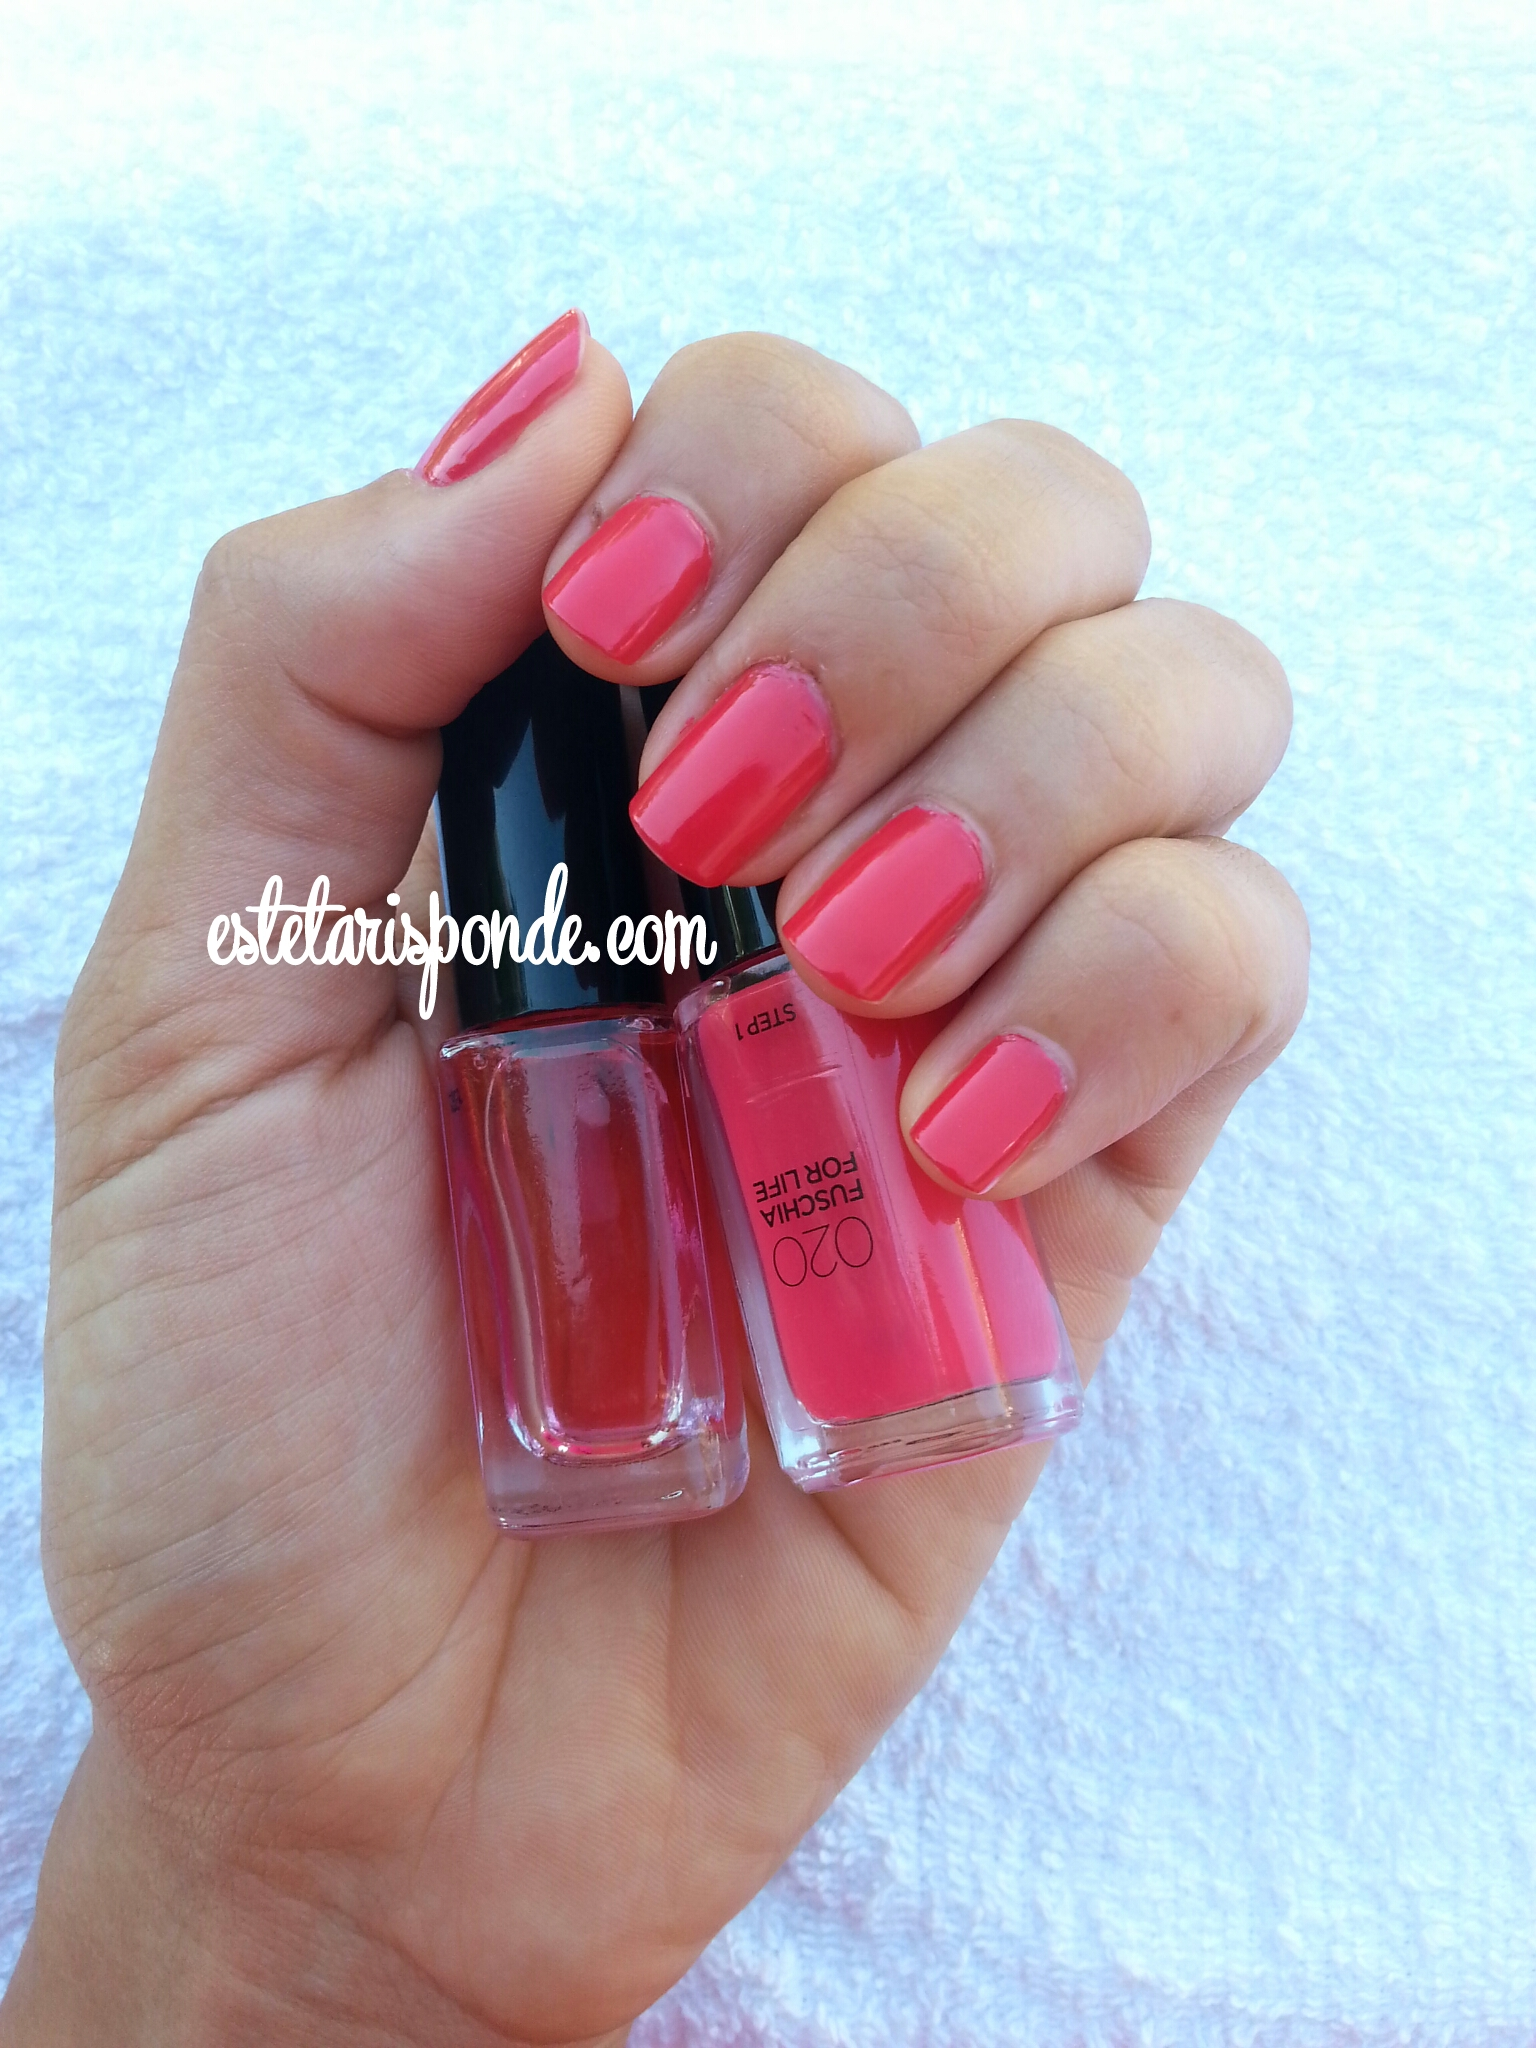 L'Oreal Infaillibile gel 12 giorni swatches